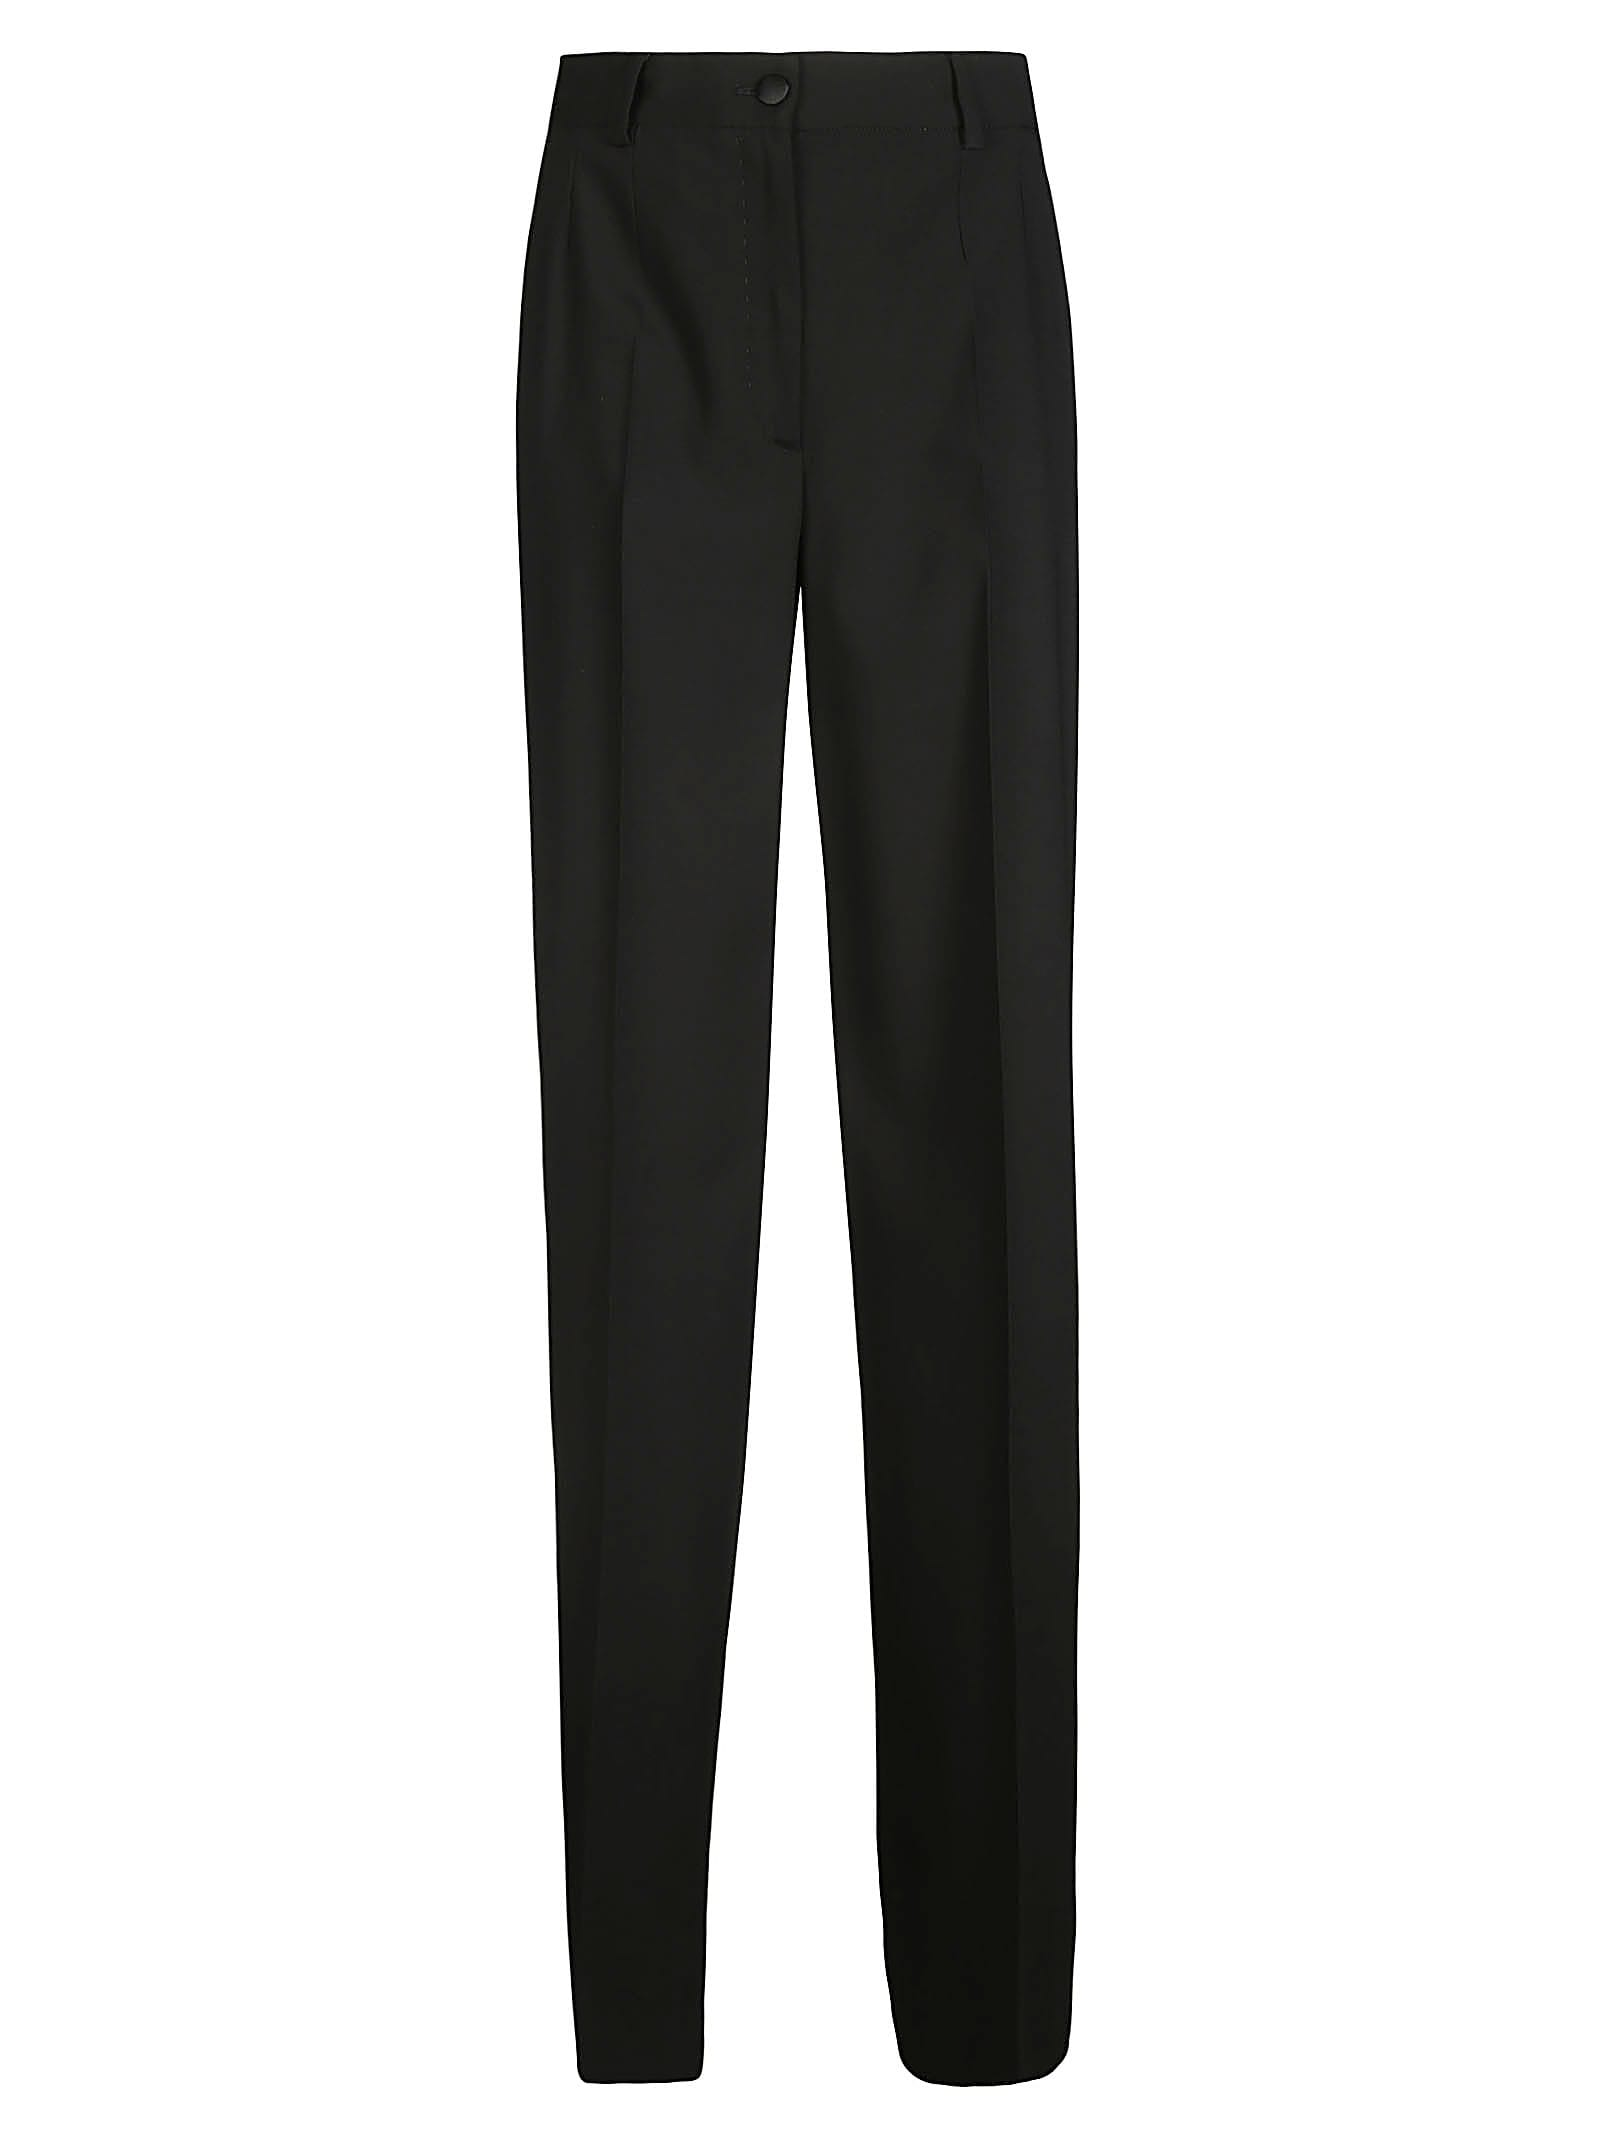 Regular Fit Plain Trousers